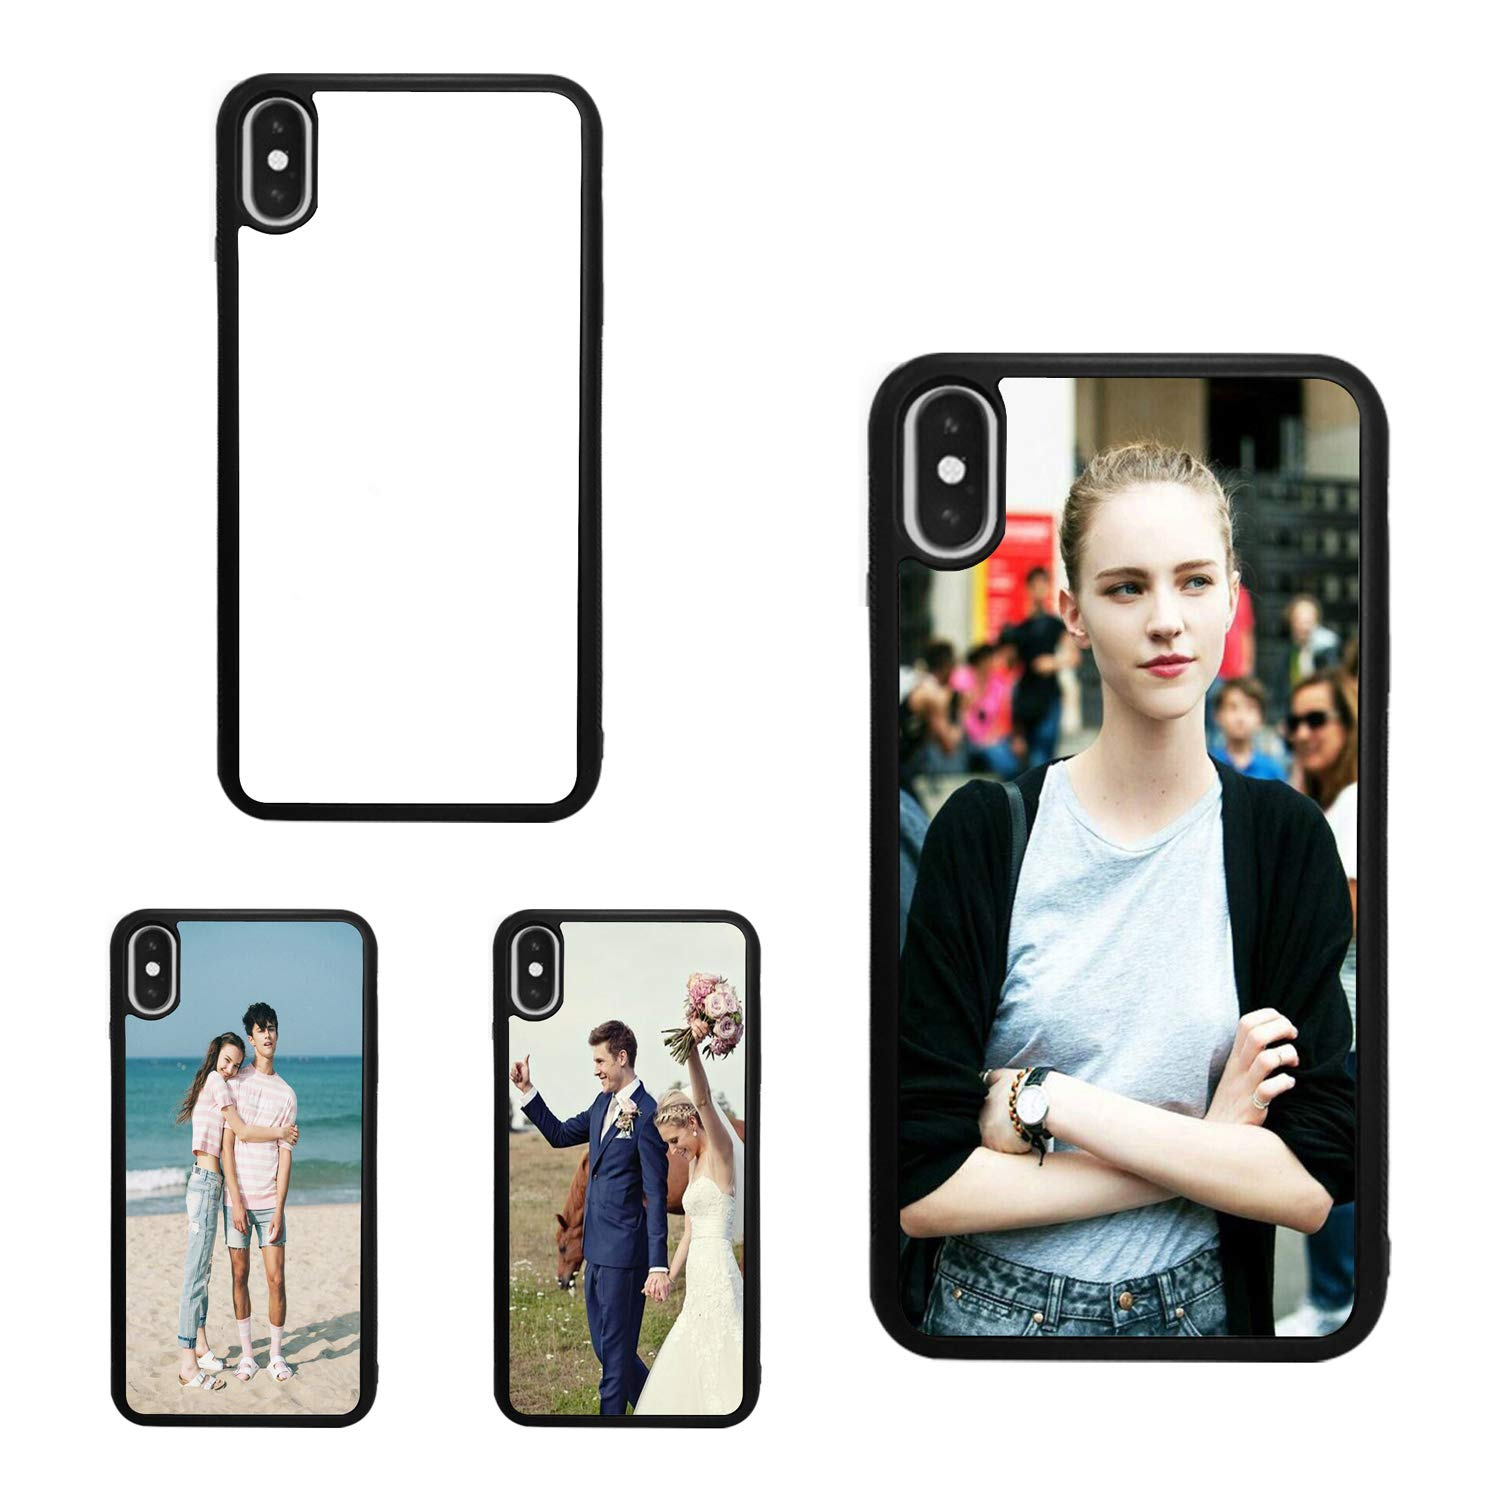 photo about Printable Phone Case referred to as 10Computer systems Sublimation Blanks Cellphone Situation Addresses for apple iphone X apple iphone Xs, 5.8 Inch. Sublimation Blanks Printable Cellphone Situation Do-it-yourself